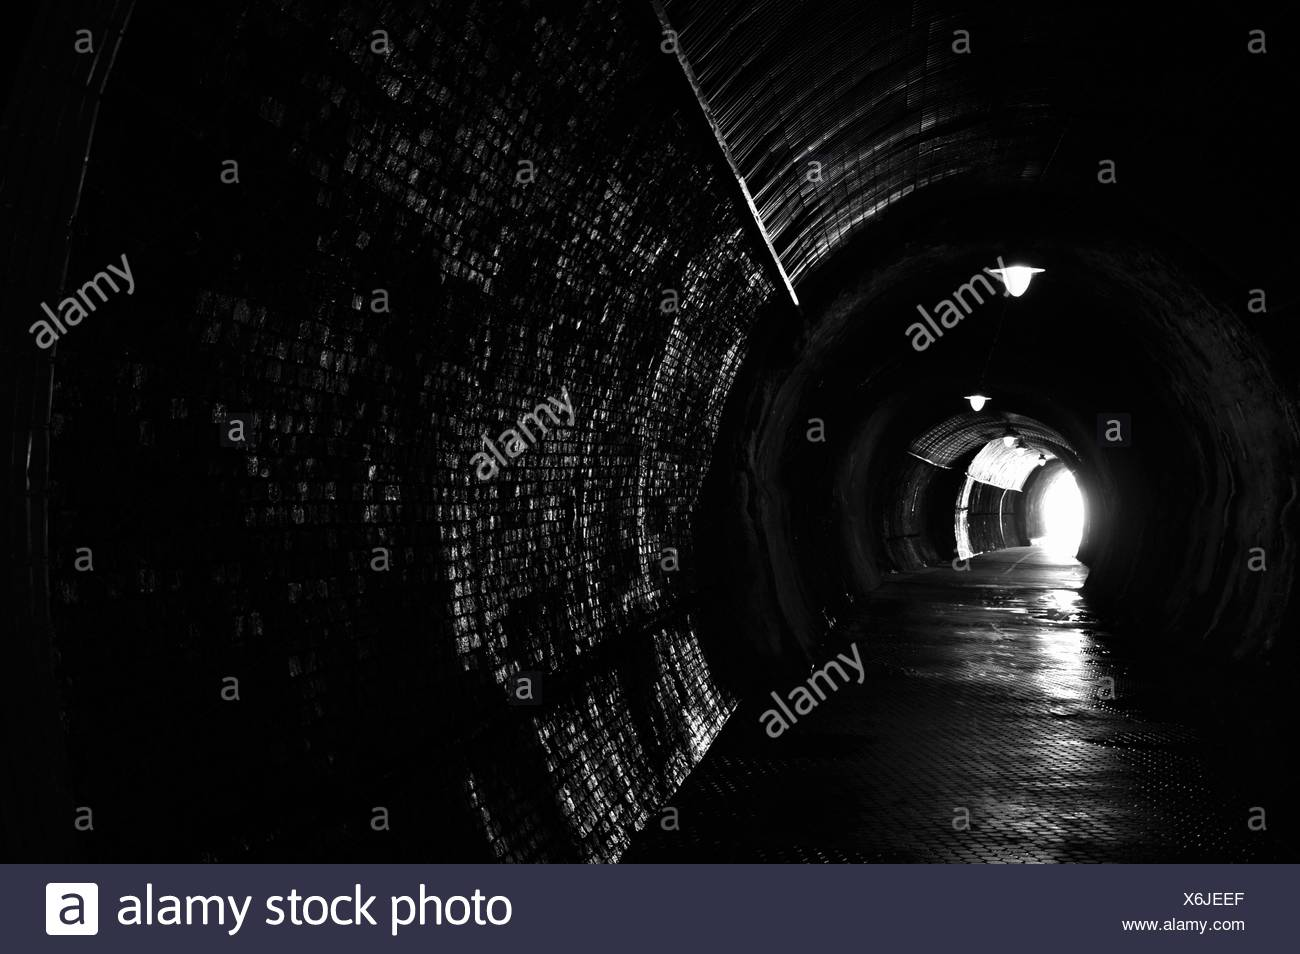 Light At End Of Tunnel - Stock Image